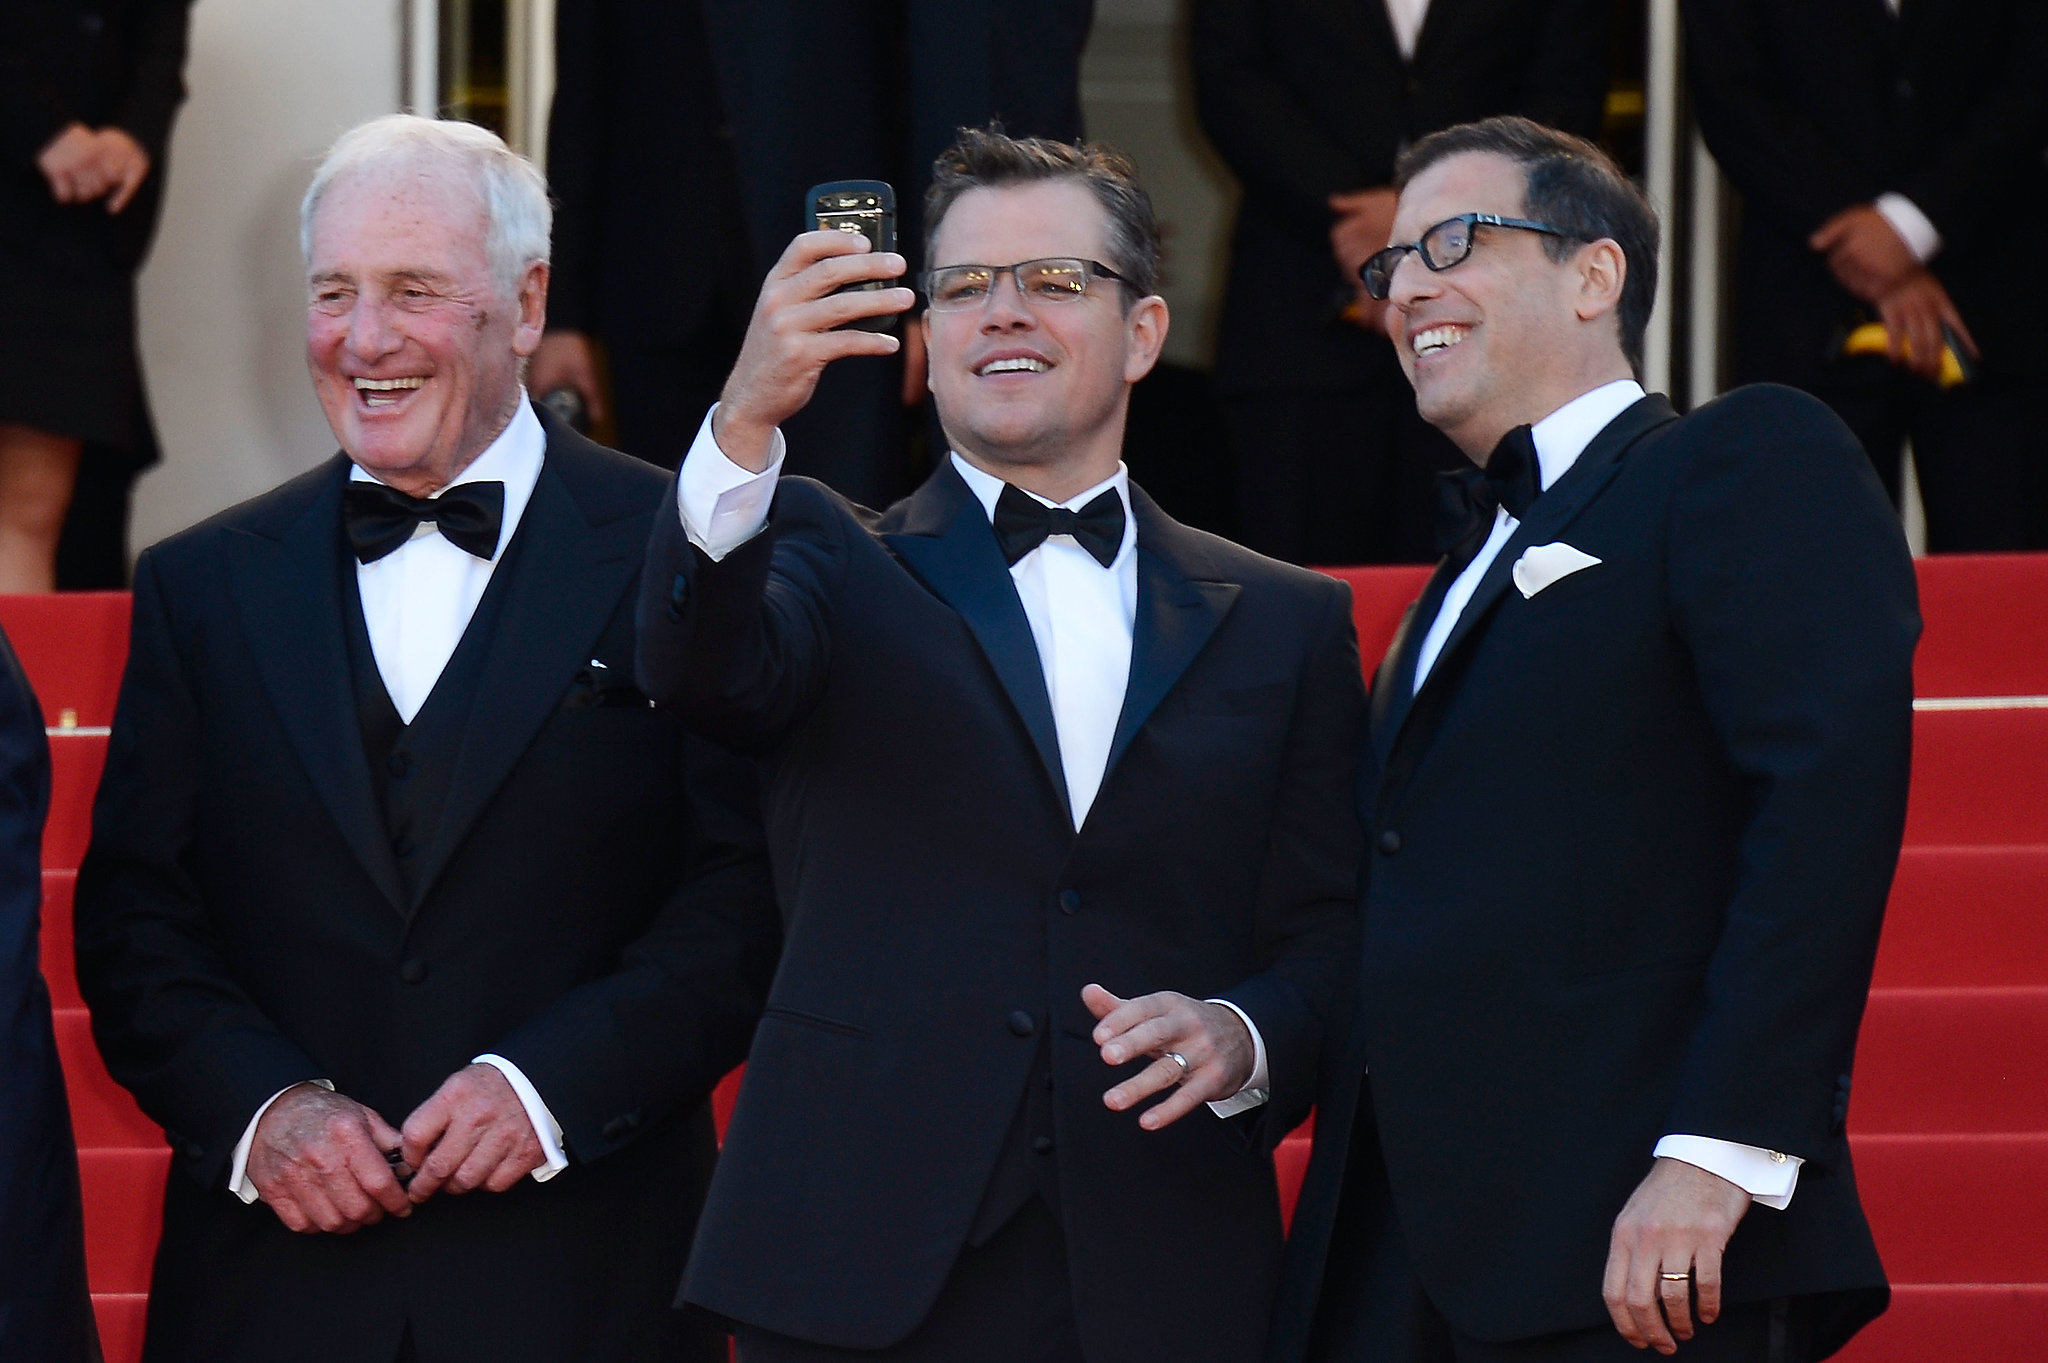 Matt Damon chatted with producer Jerry Weintraub and writer Richard LaGravenese at the Behind the Candelabra premiere on Tuesday.